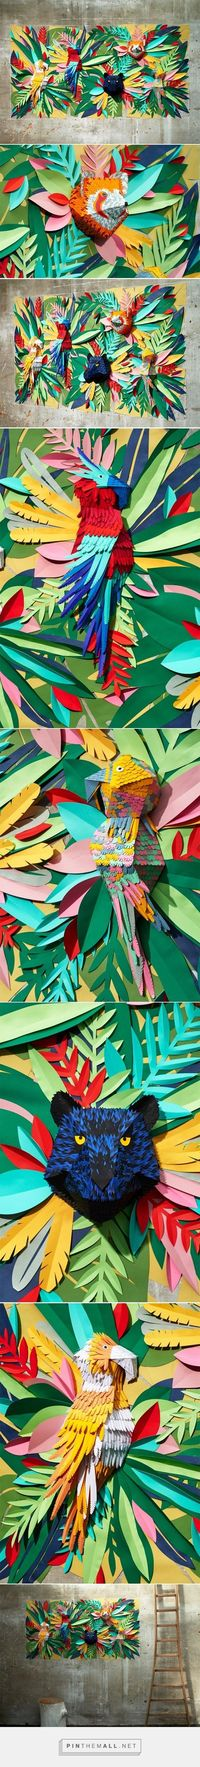 mlle hipolyte recreates a tropical jungle with hand-cut paper pieces - created via http://pinthemall.net